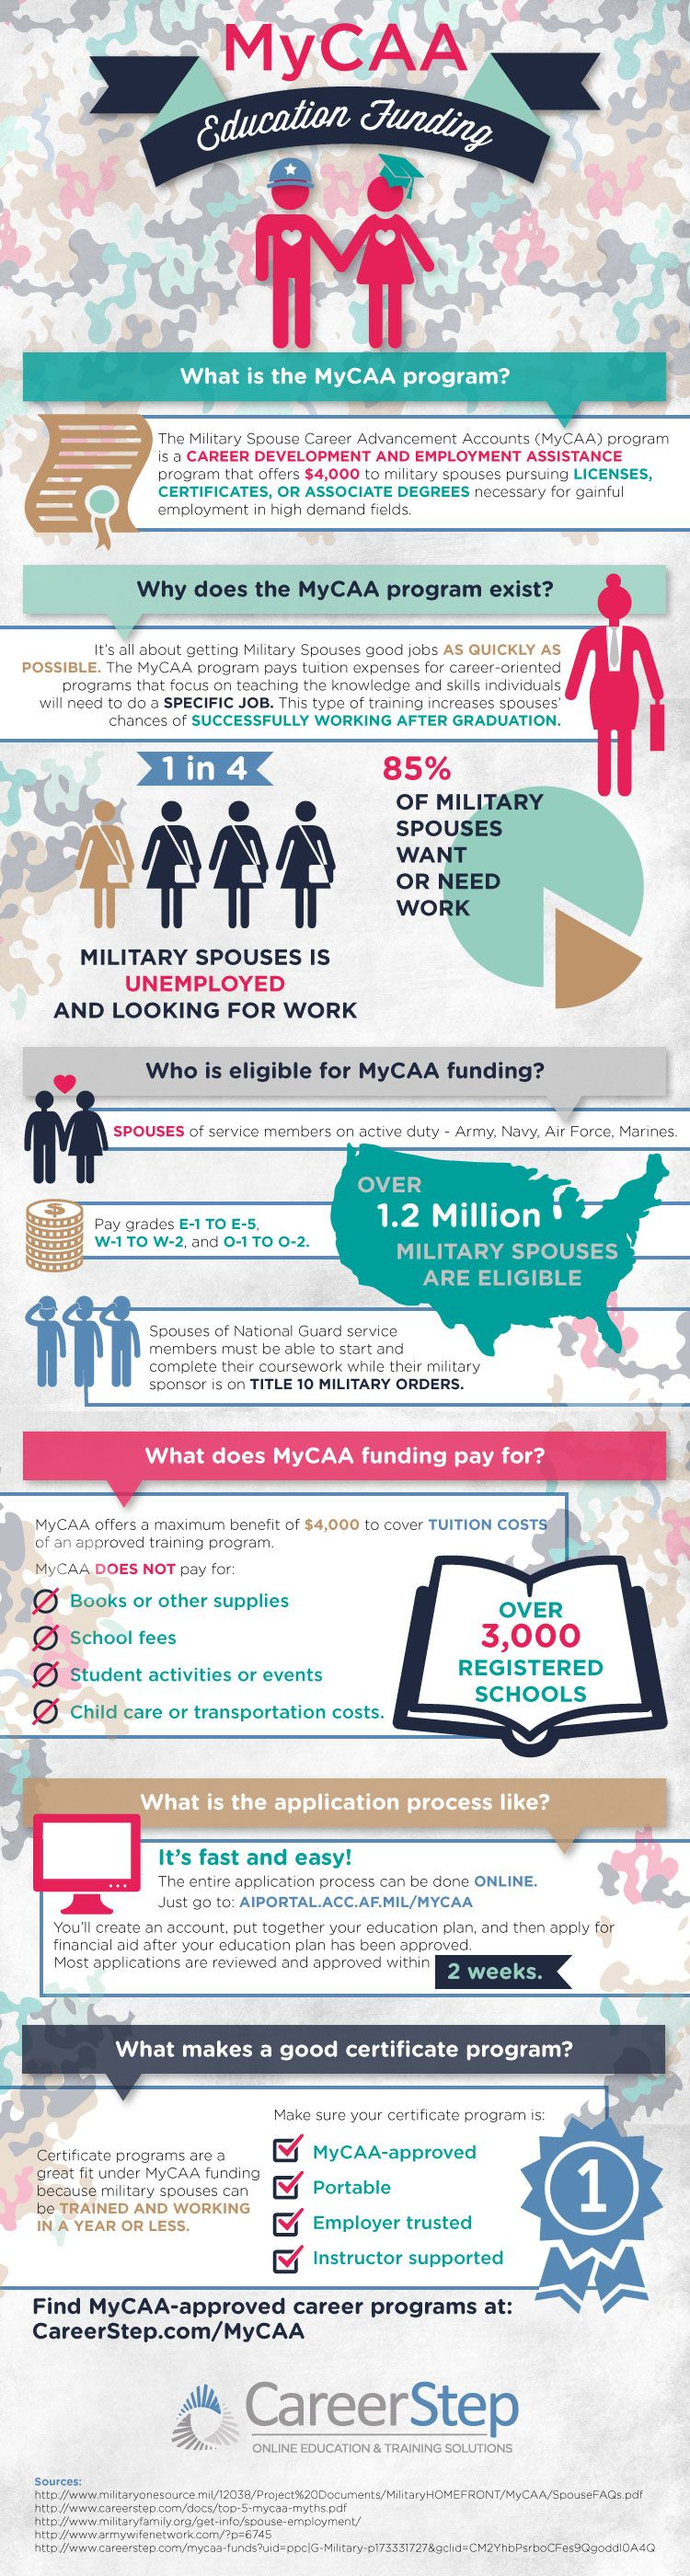 Everything You Need To Know About Mycaa From Career Step Military